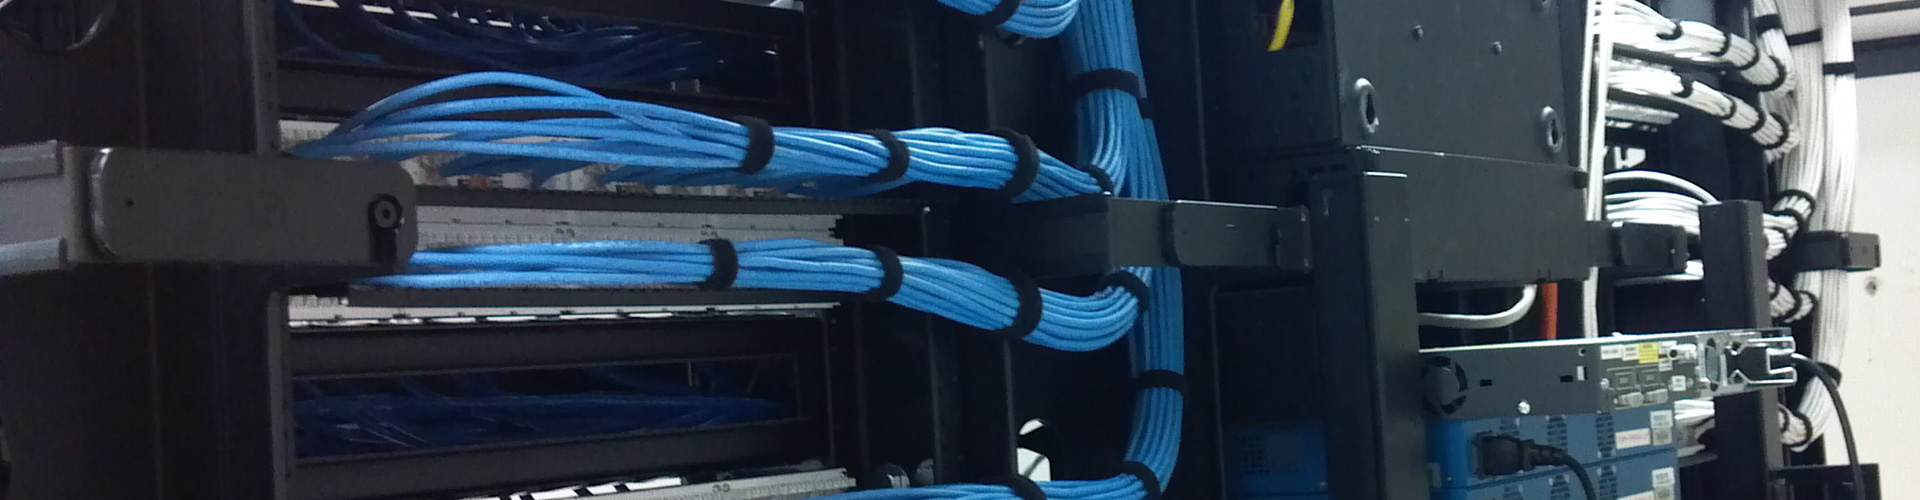 Data Wiring | Structured Network Data Cabling Wiring Denver Fort Collins